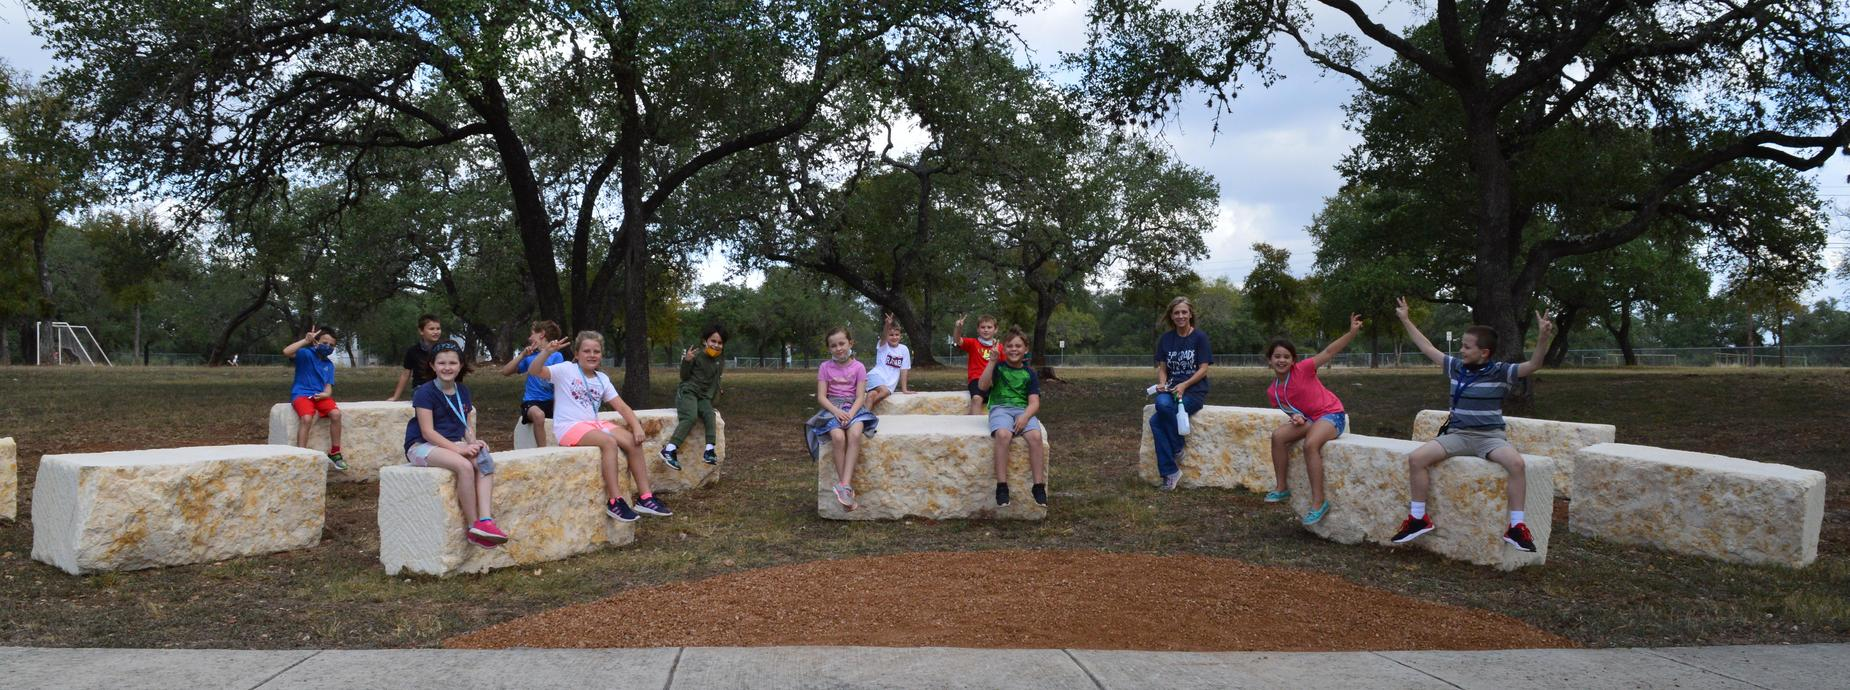 3RD GRADE LOVES THE NEW OUTDOOR CLASSROOM